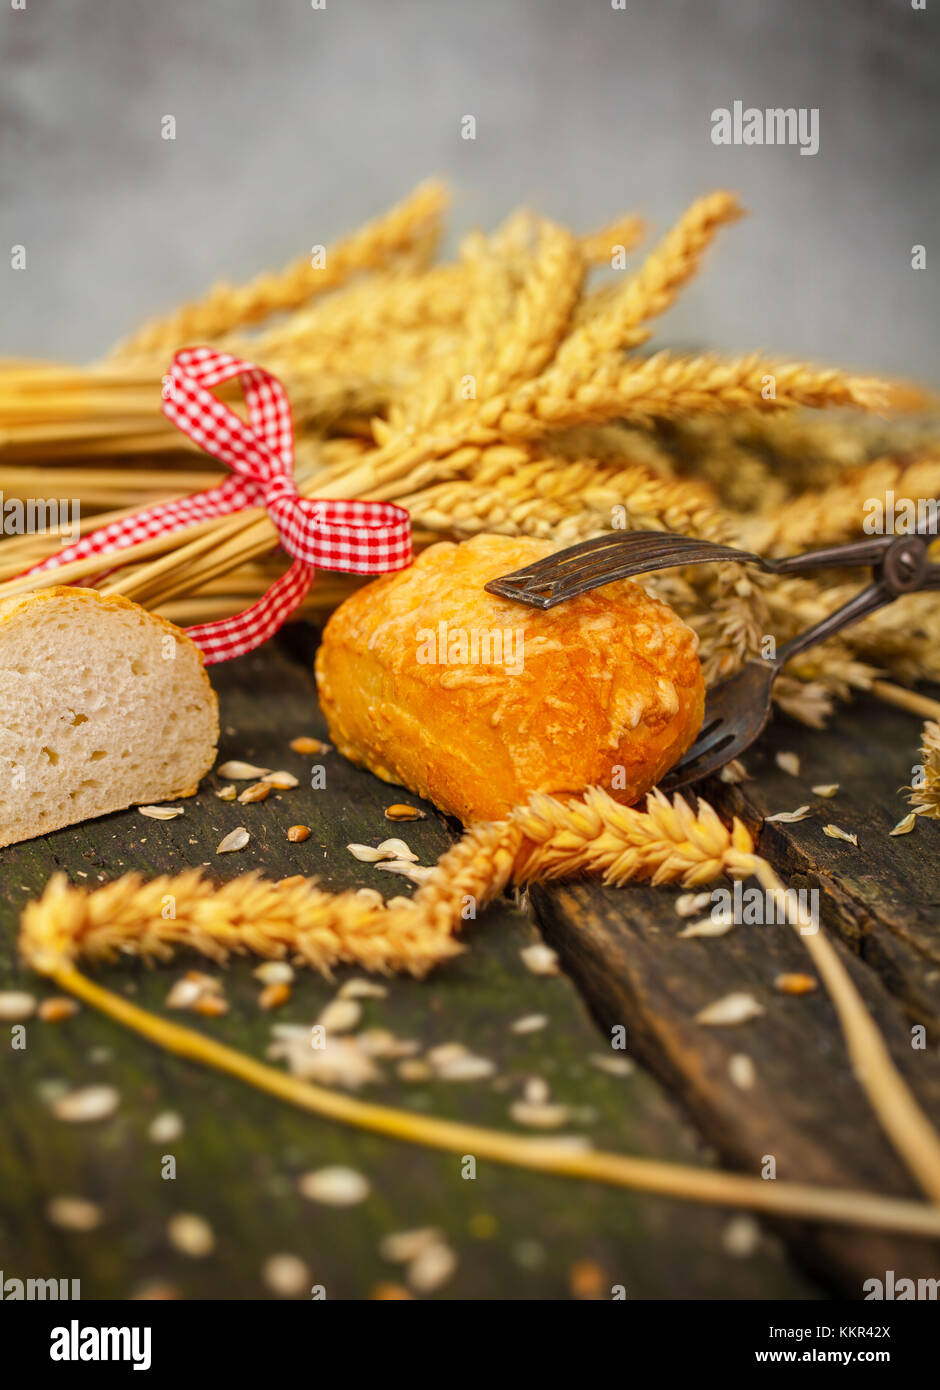 Pastry tongs taking bread roll - Stock Image